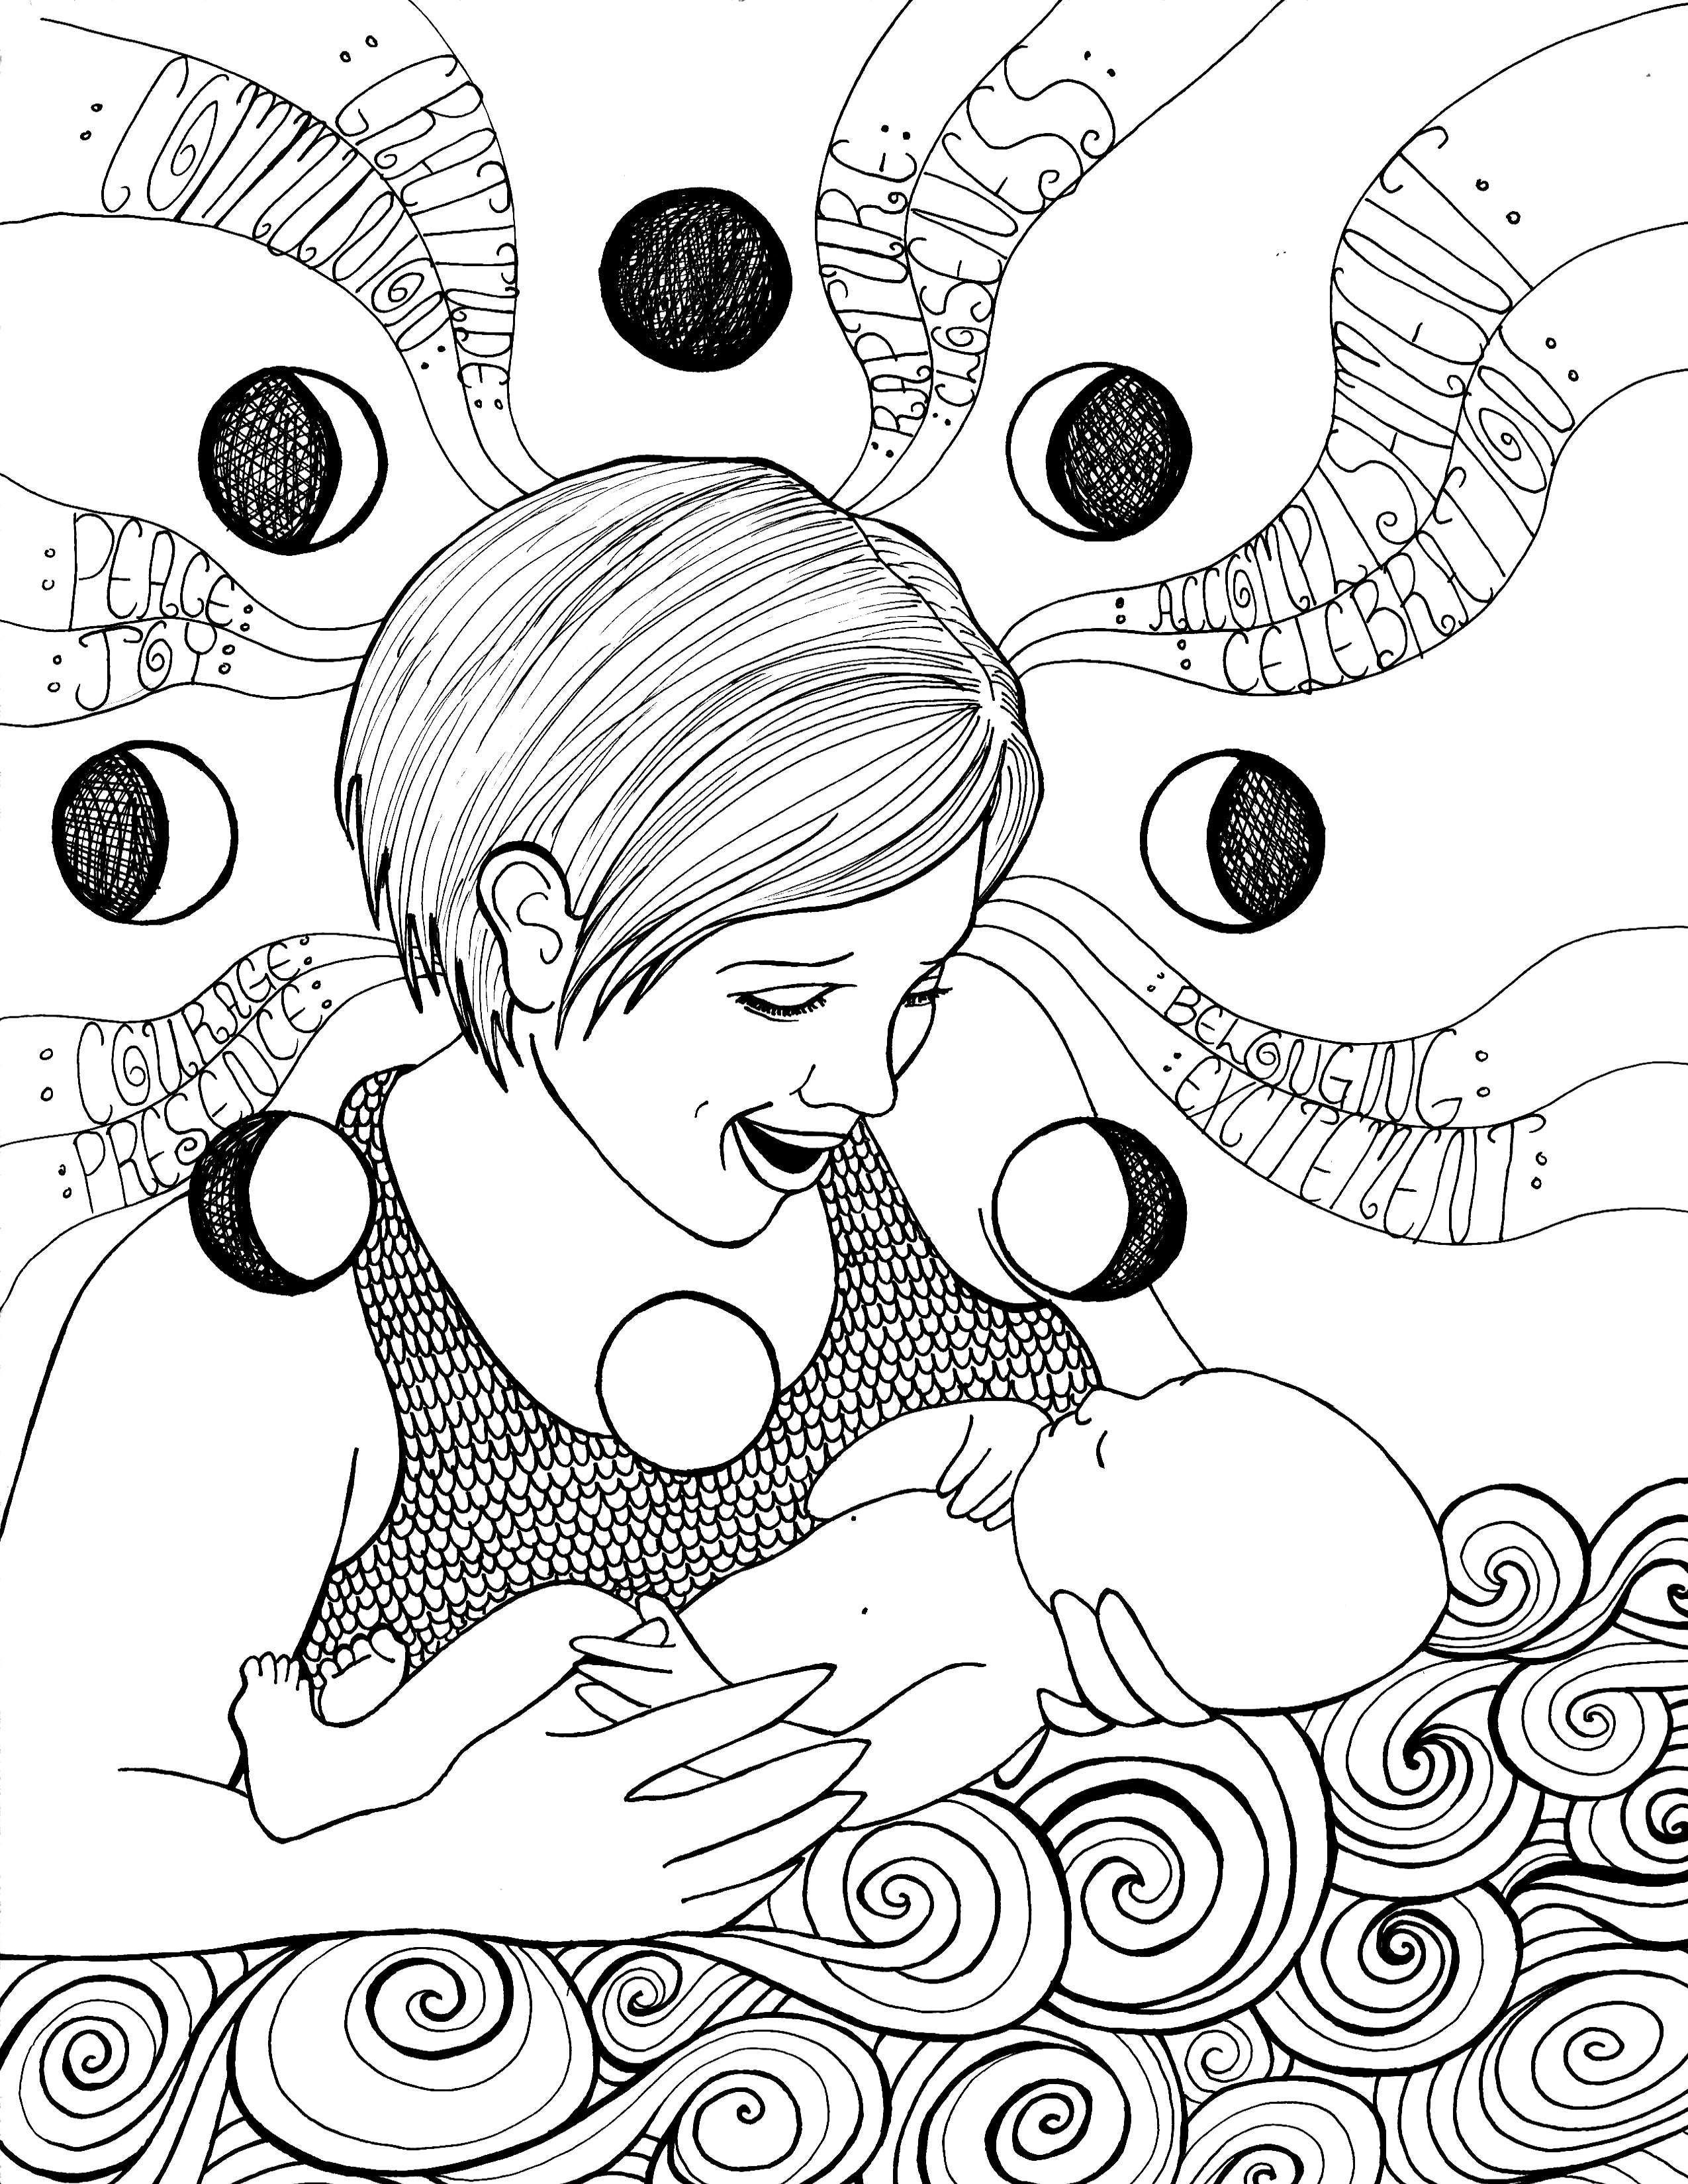 Free Pregnancy Coloring Pages | Pregnancy, Miraculous and Imagination